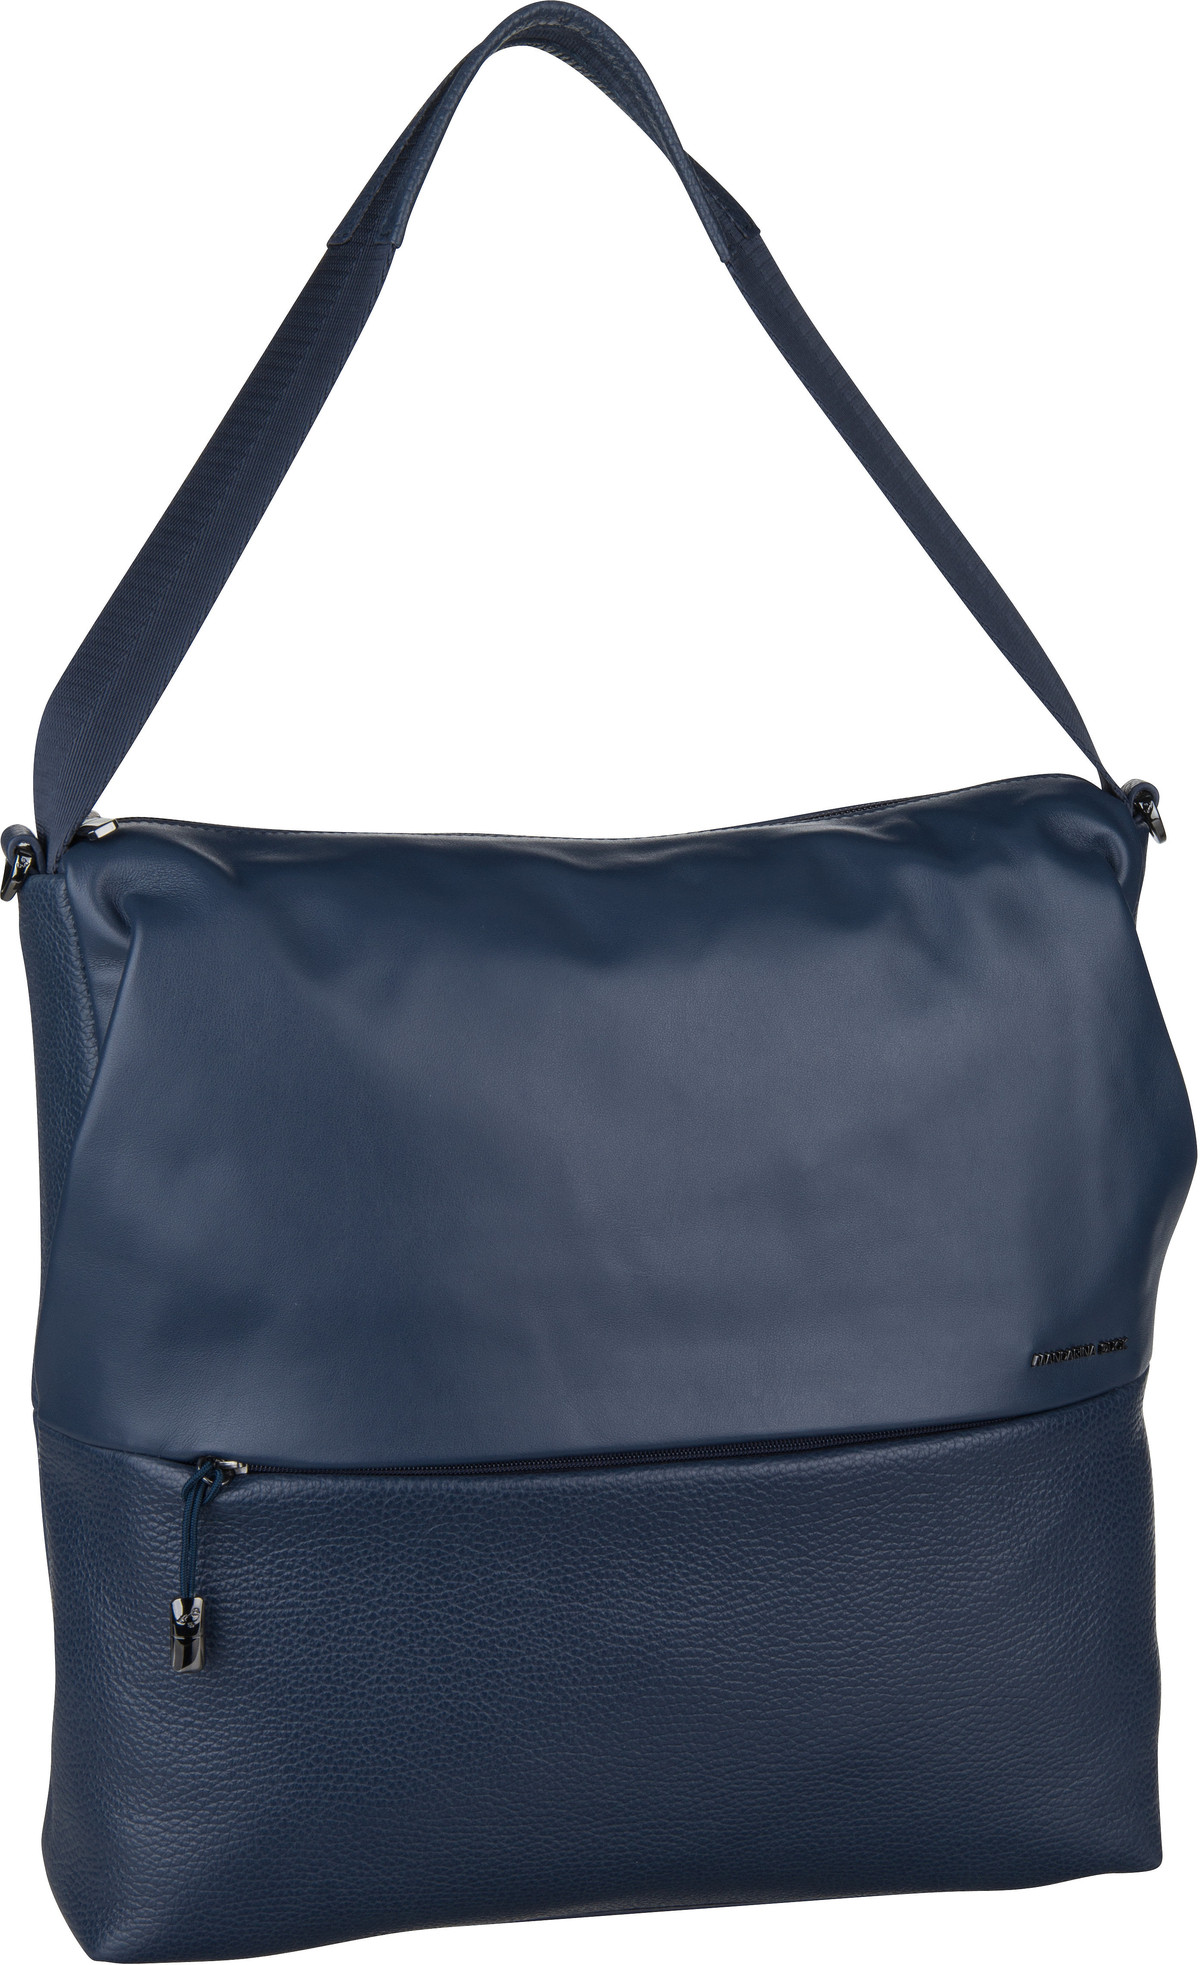 Handtasche Athena Medium Hobo UPT05 Dress Blue